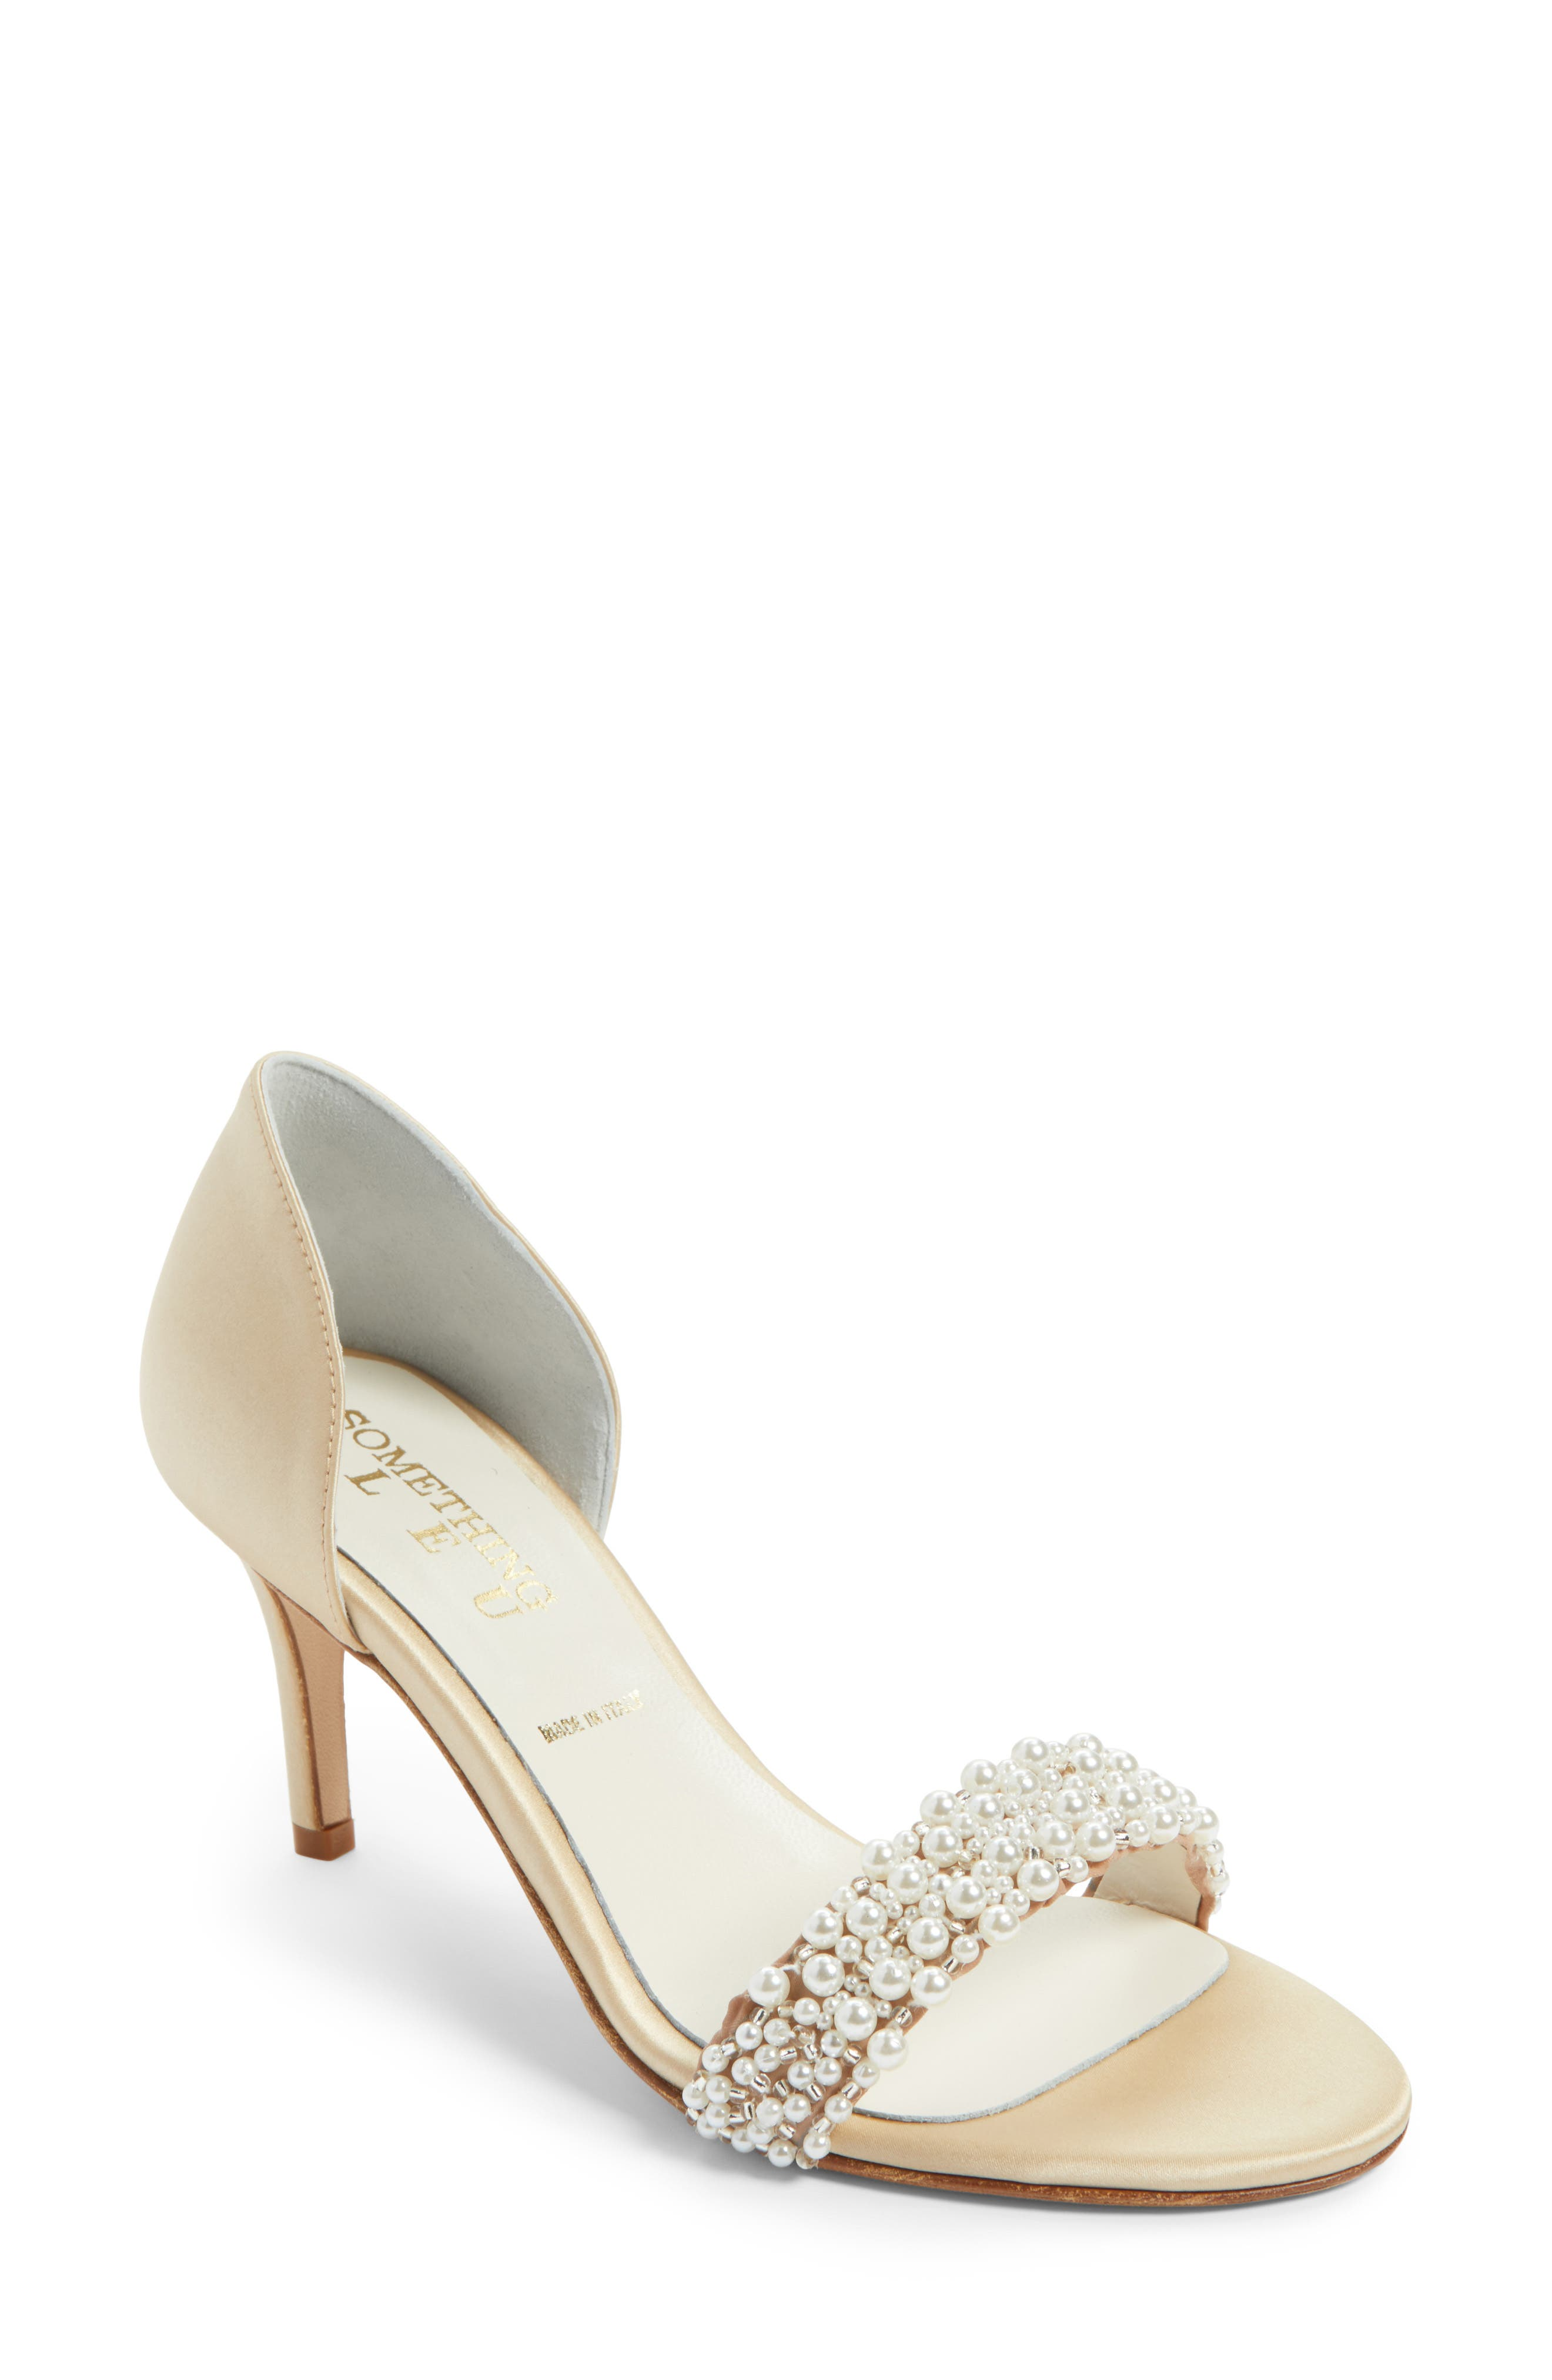 SOMETHING BLEU Cappy d'Orsay Sandal, Main, color, NUDE SATIN